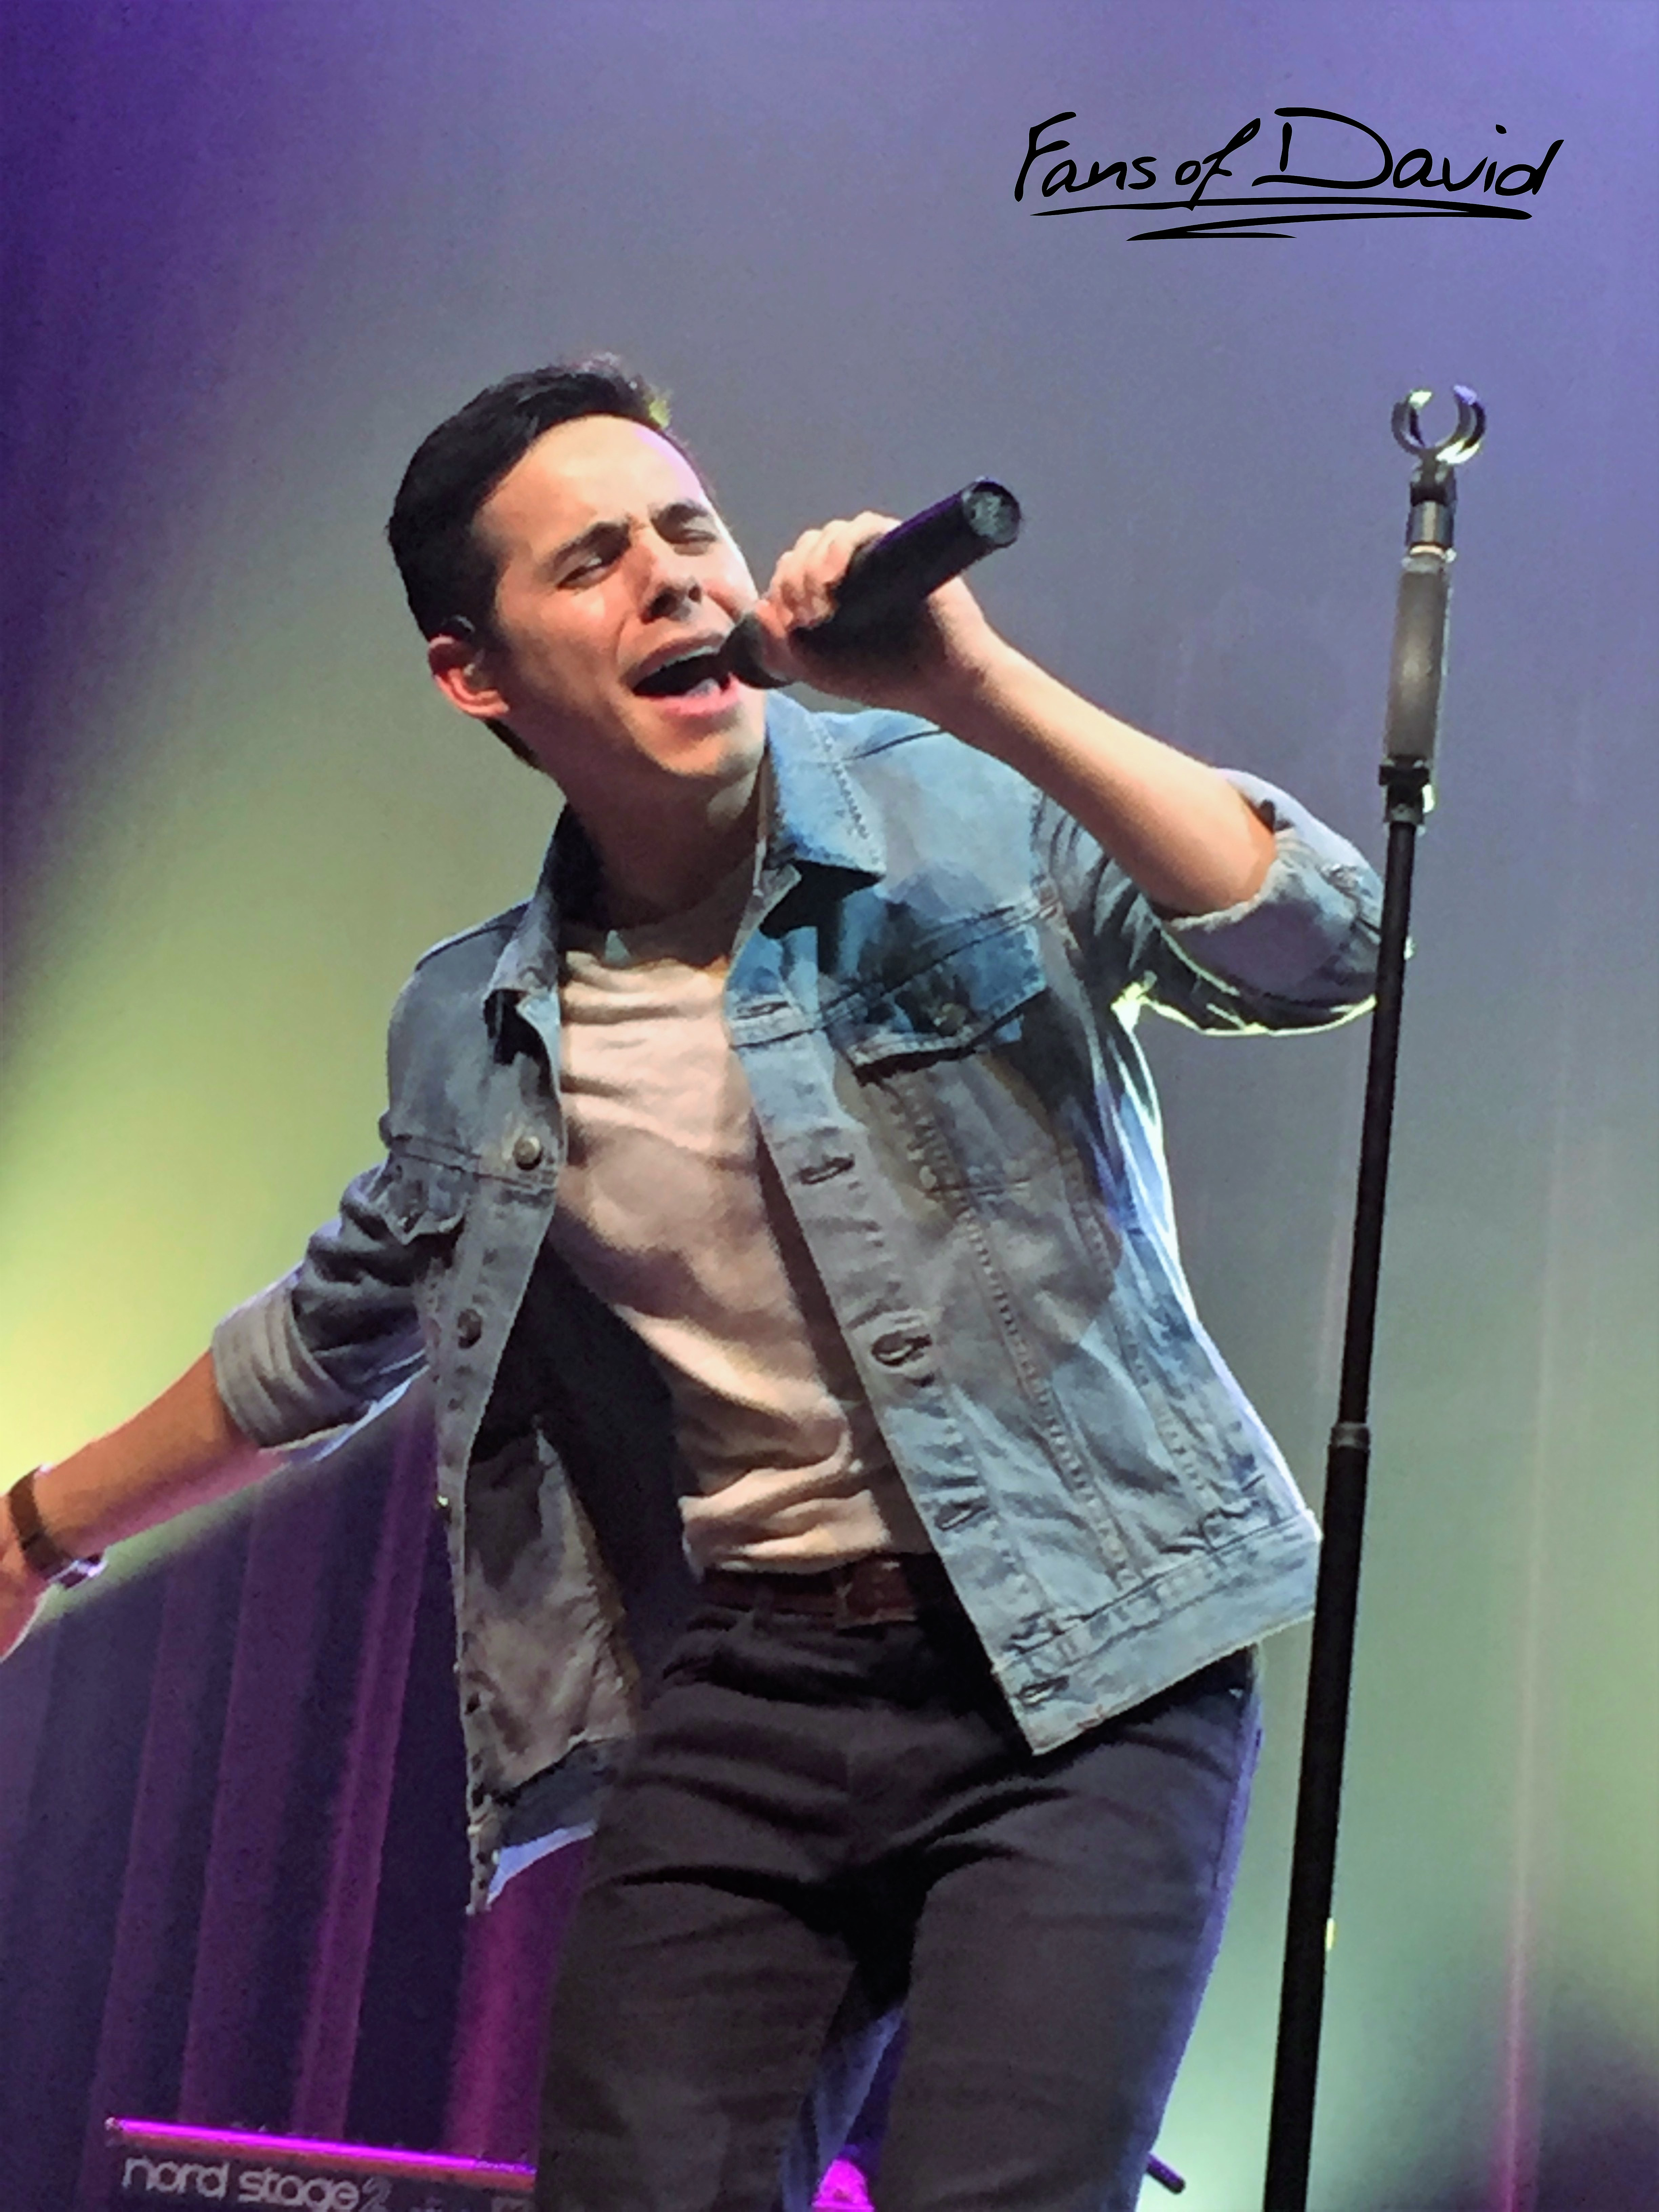 David Archuleta holding mike on stage in Franklin Tennessee